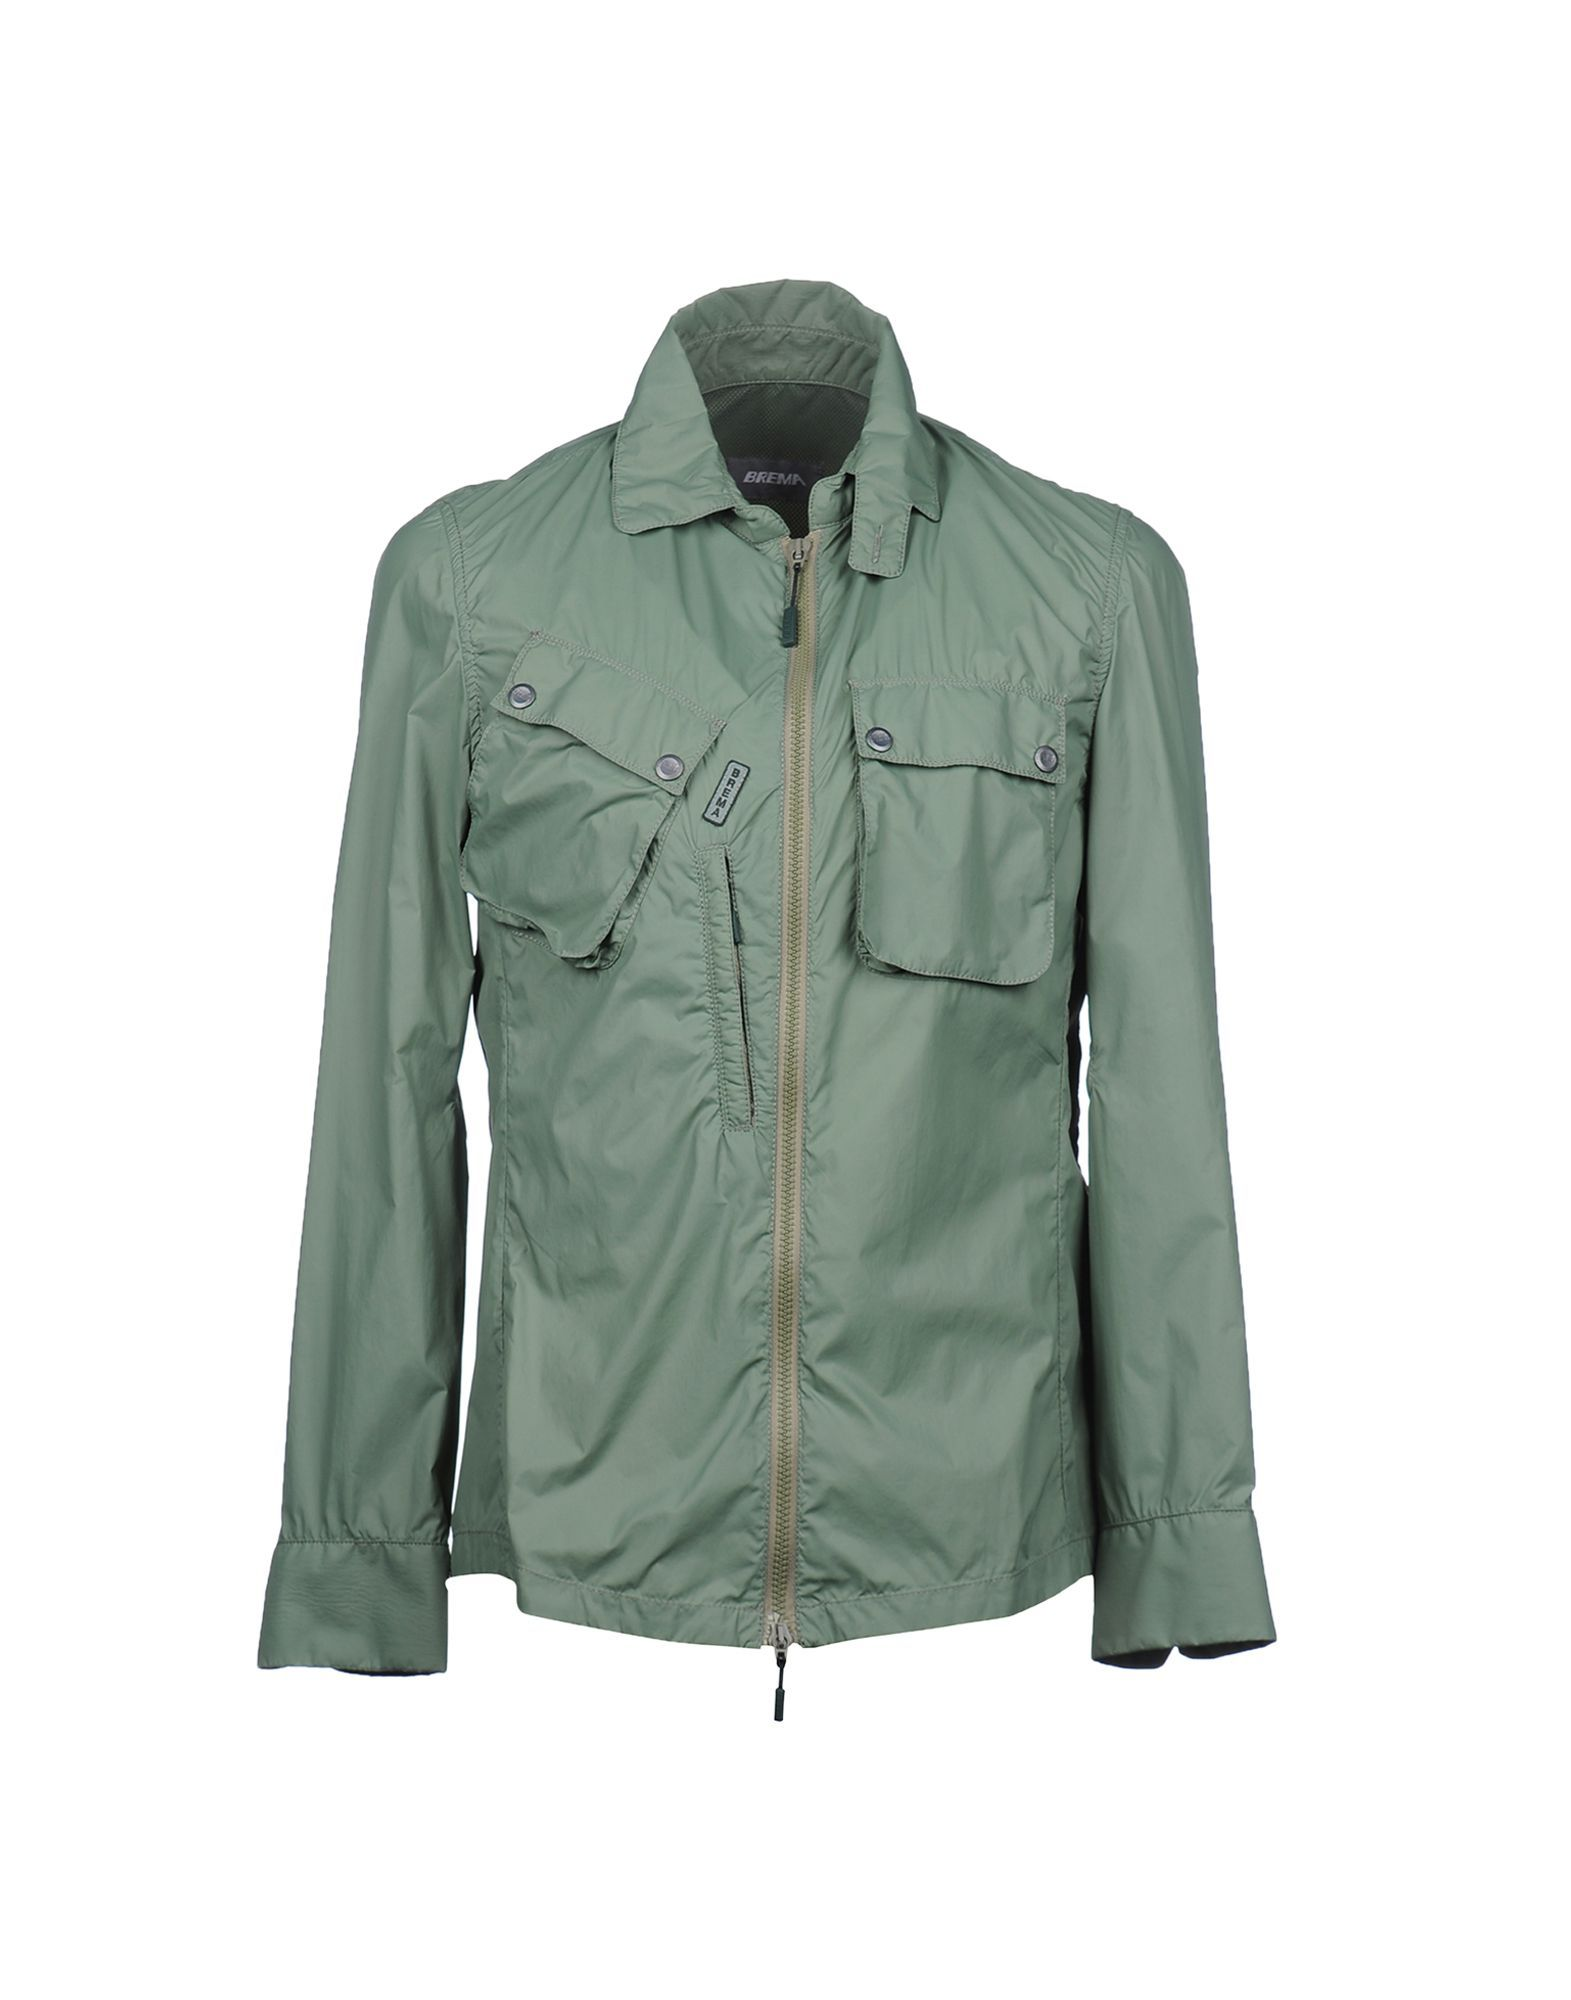 Footlocker Cheap Price COATS & JACKETS - Jackets Brema Cheap Low Shipping Fee Store For Sale Exclusive Cheap Price CQQASxi